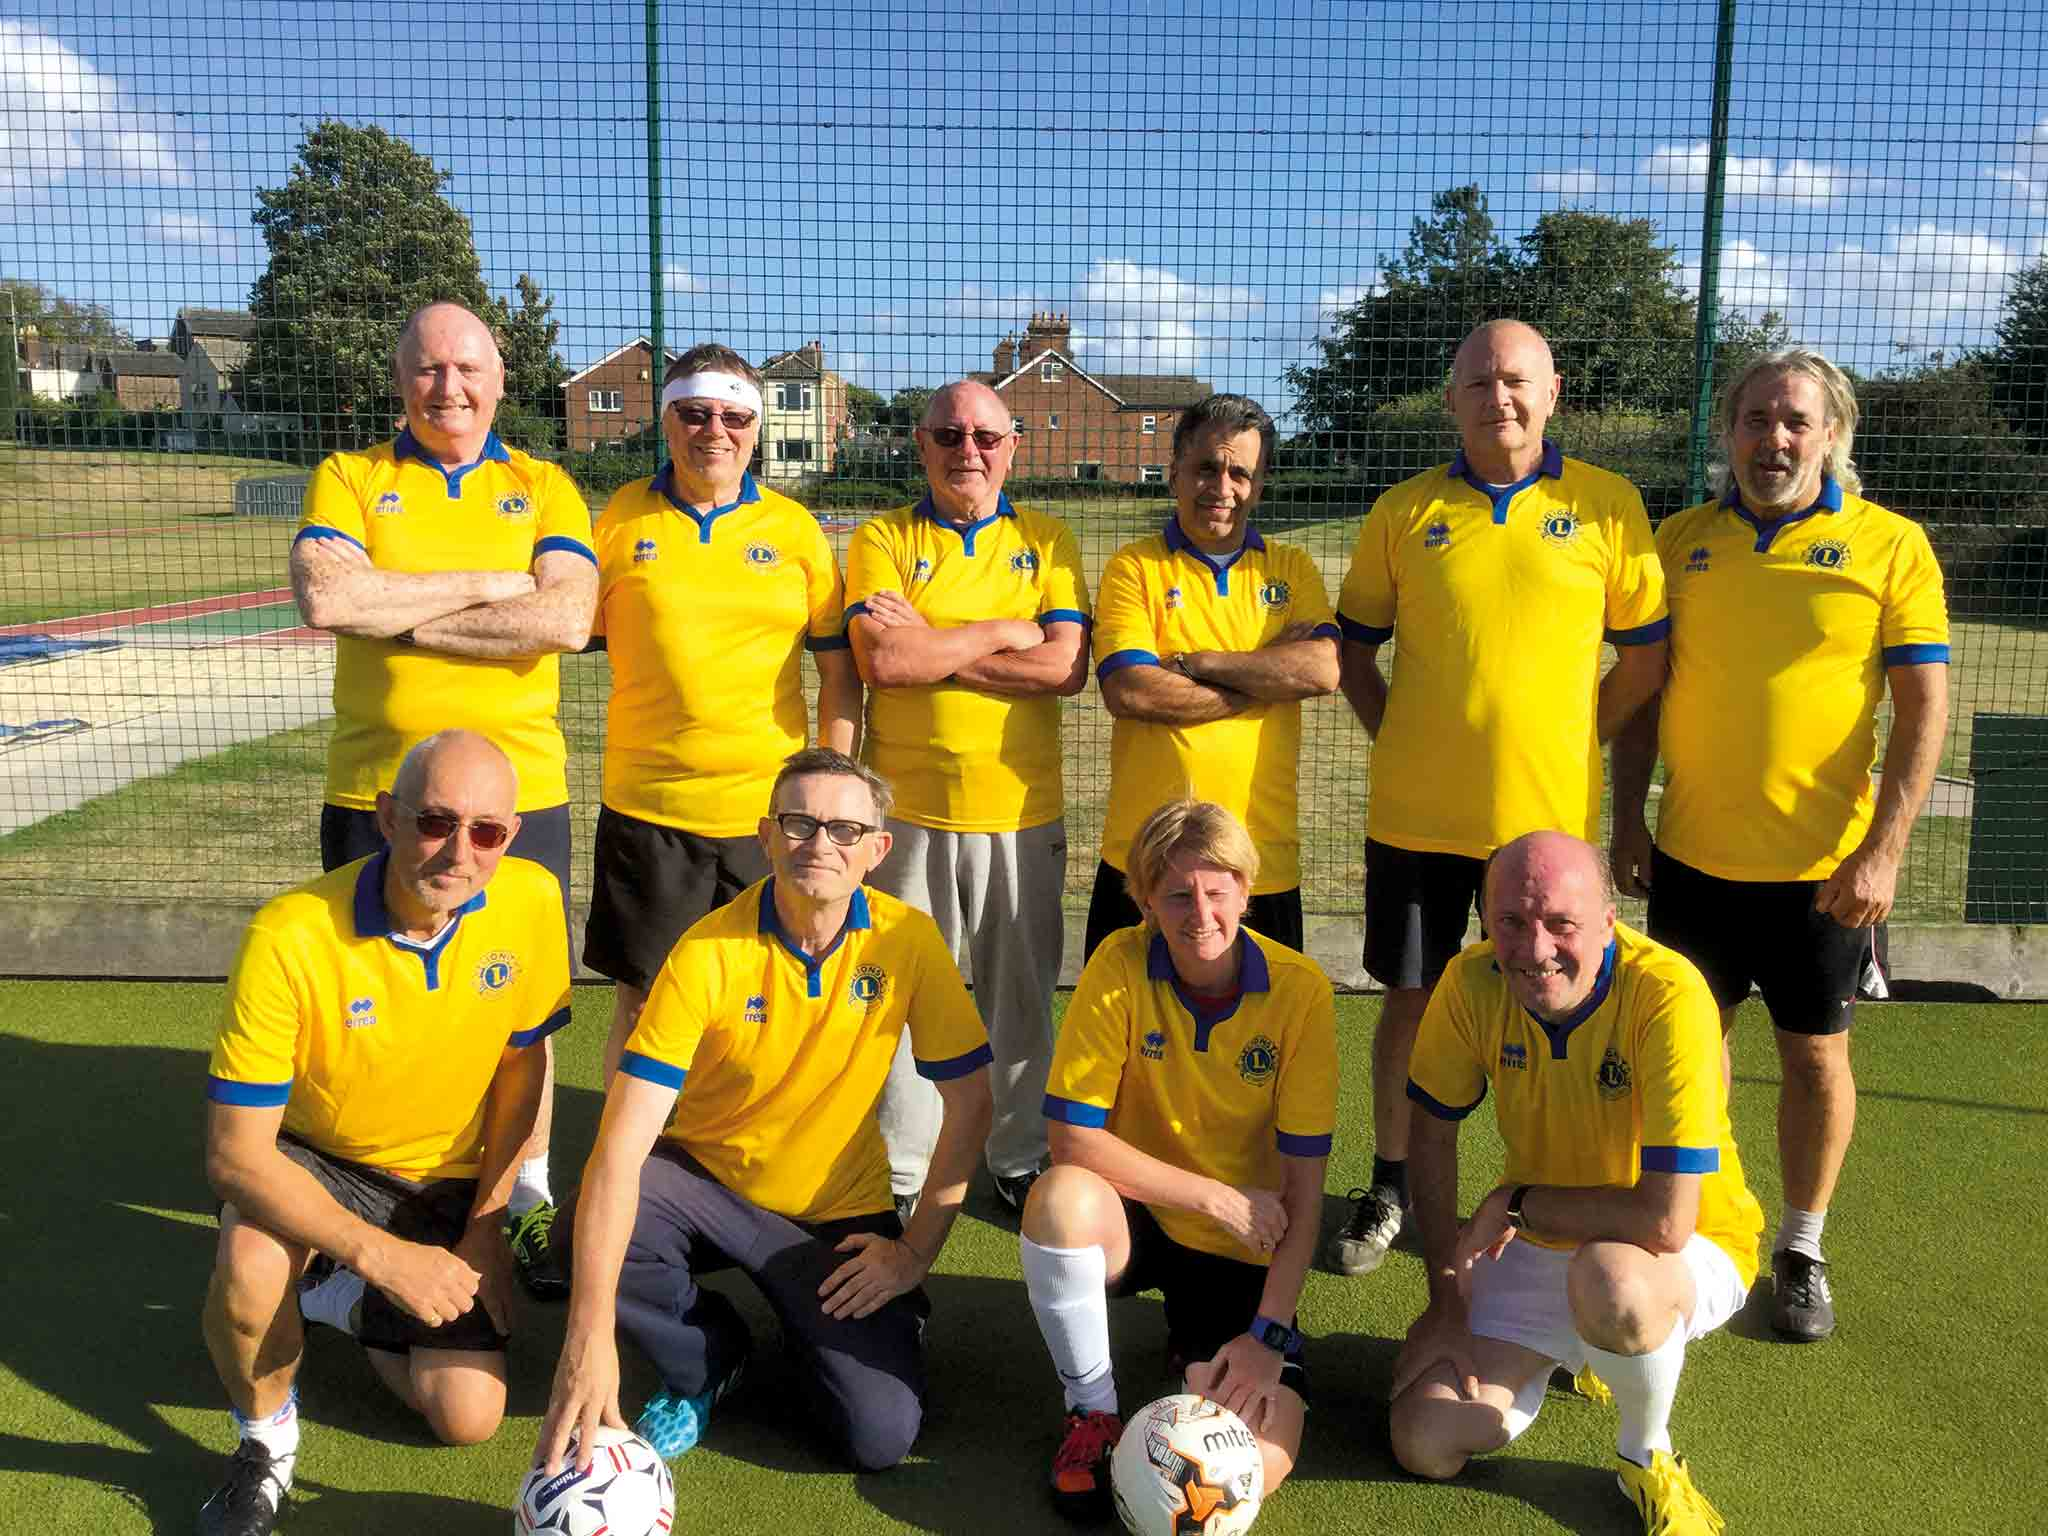 Tonbridge Walking Football Club